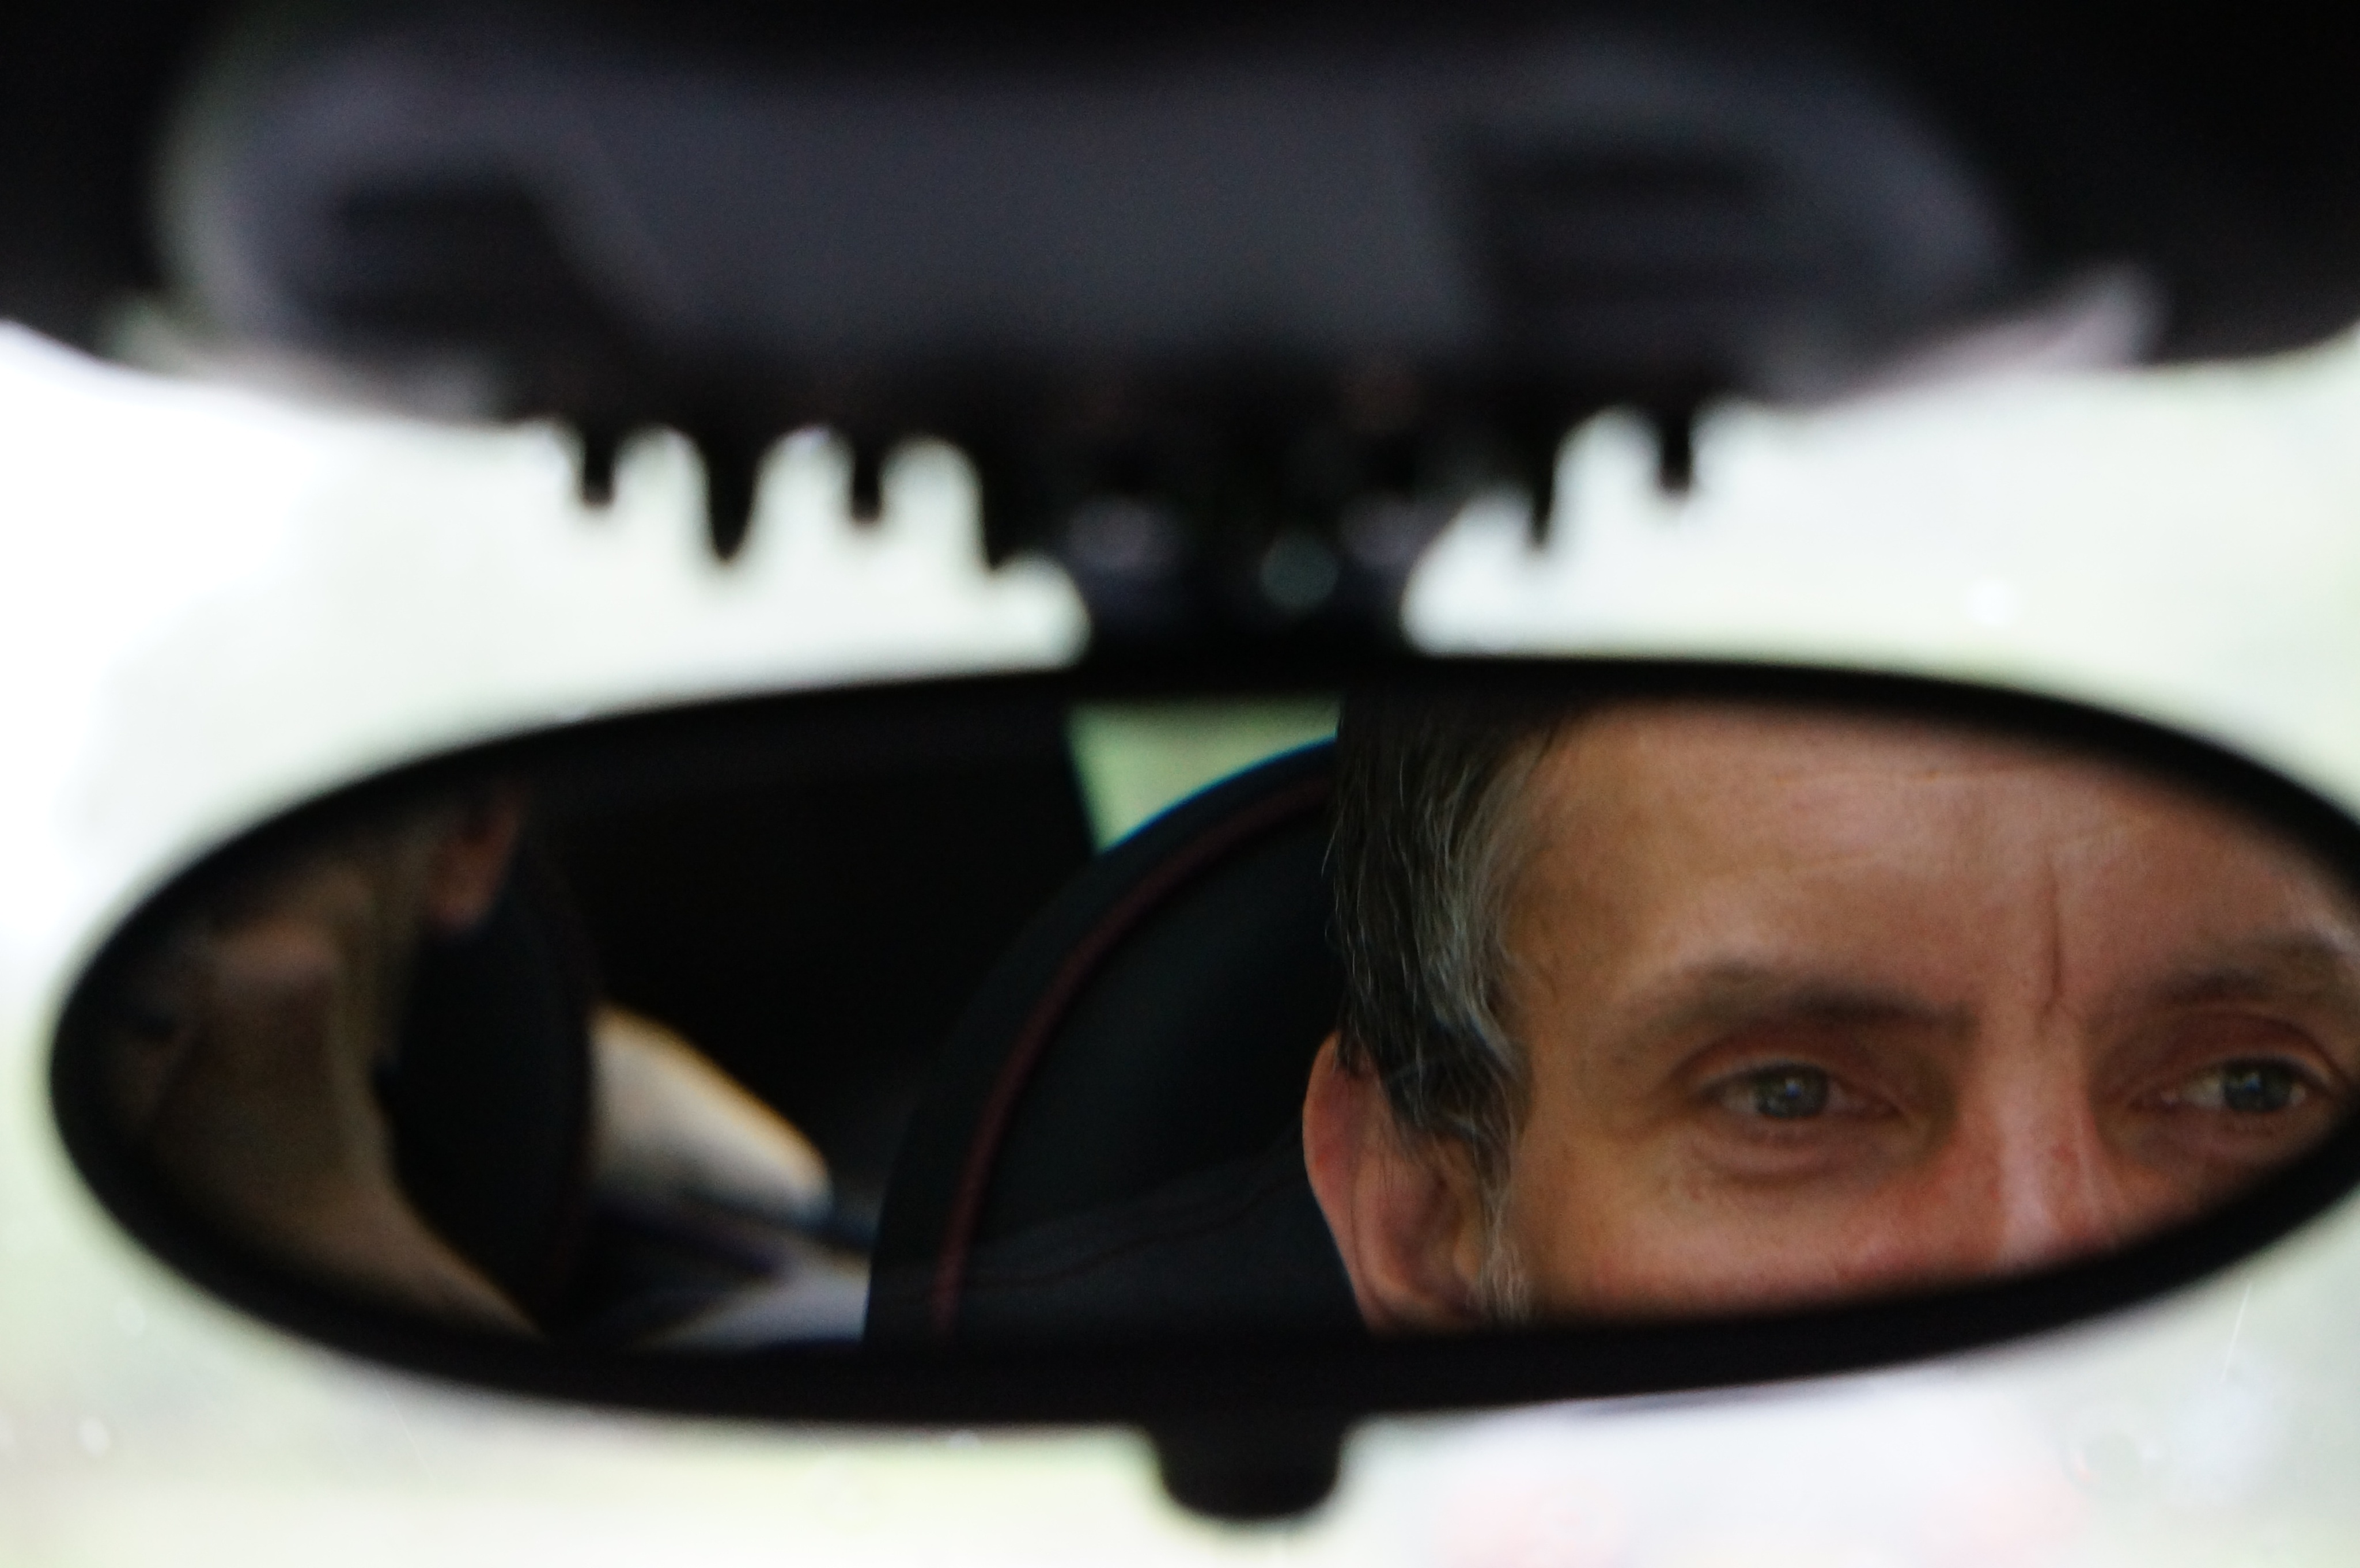 Rear vision mirror showing part of man's face